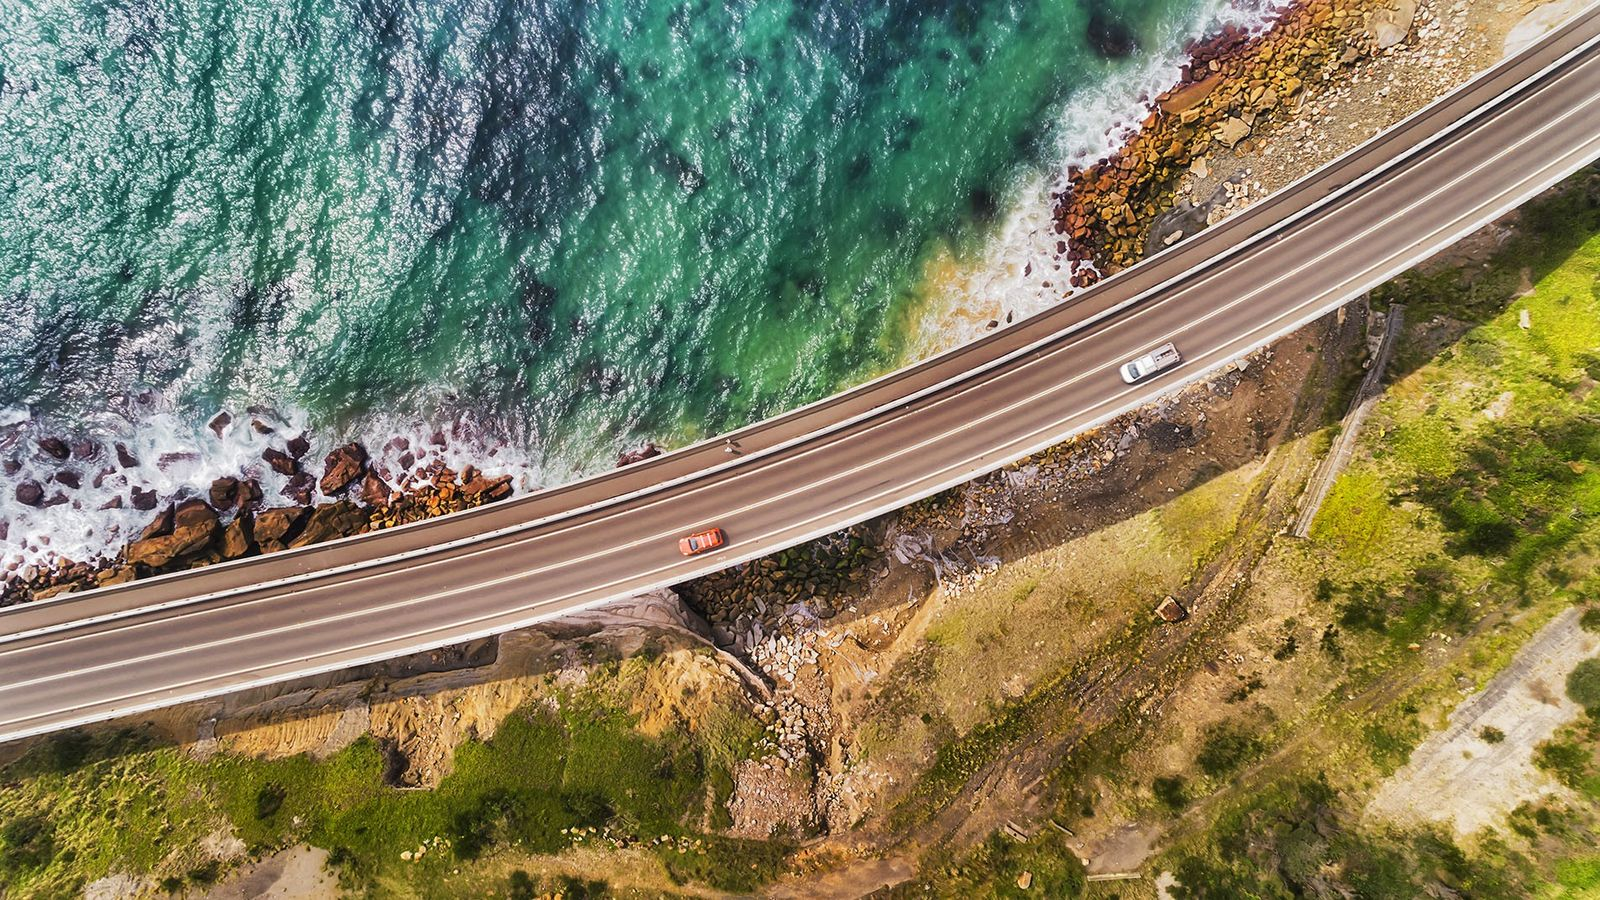 Aerial View of the Sea Cliff Bridge, Grand Pacific Drive, New South Wales